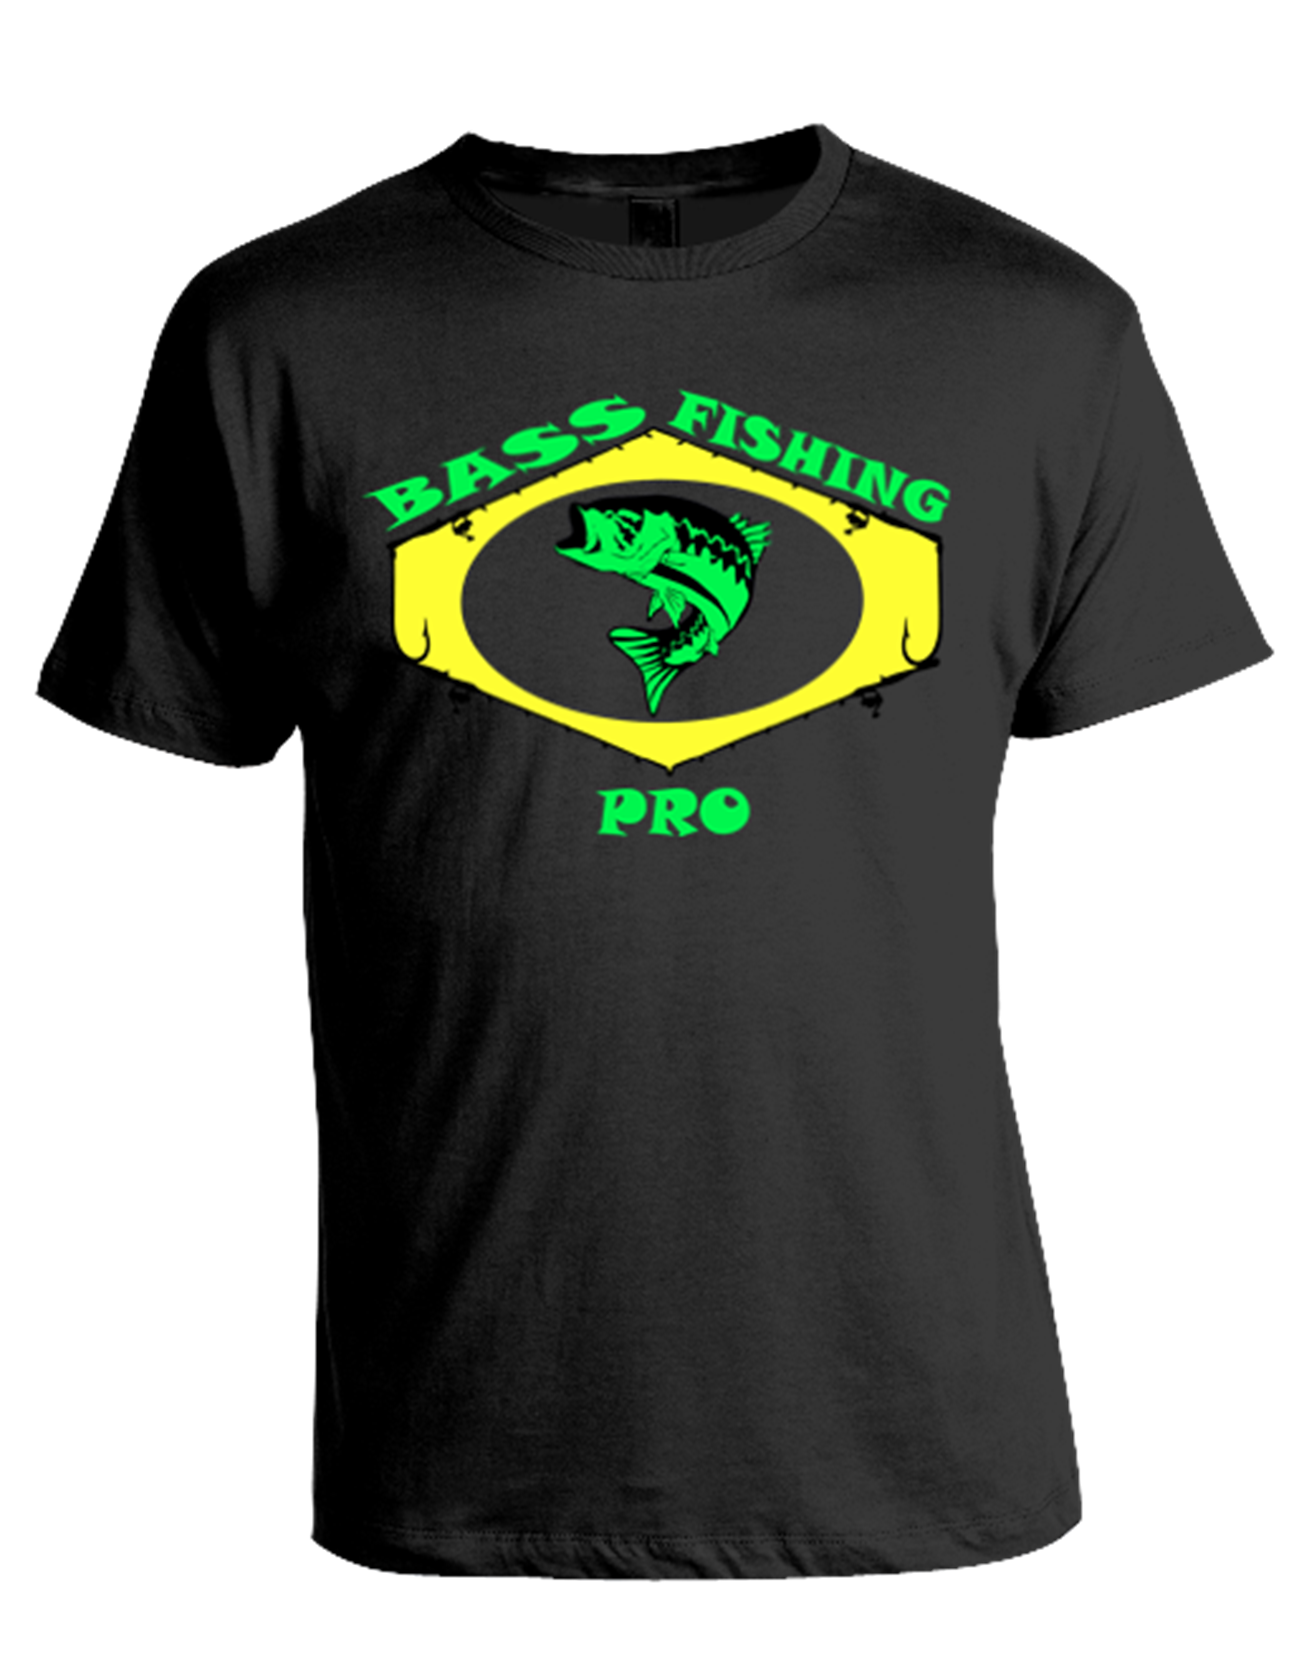 Bass Fishing Pro T Shirt